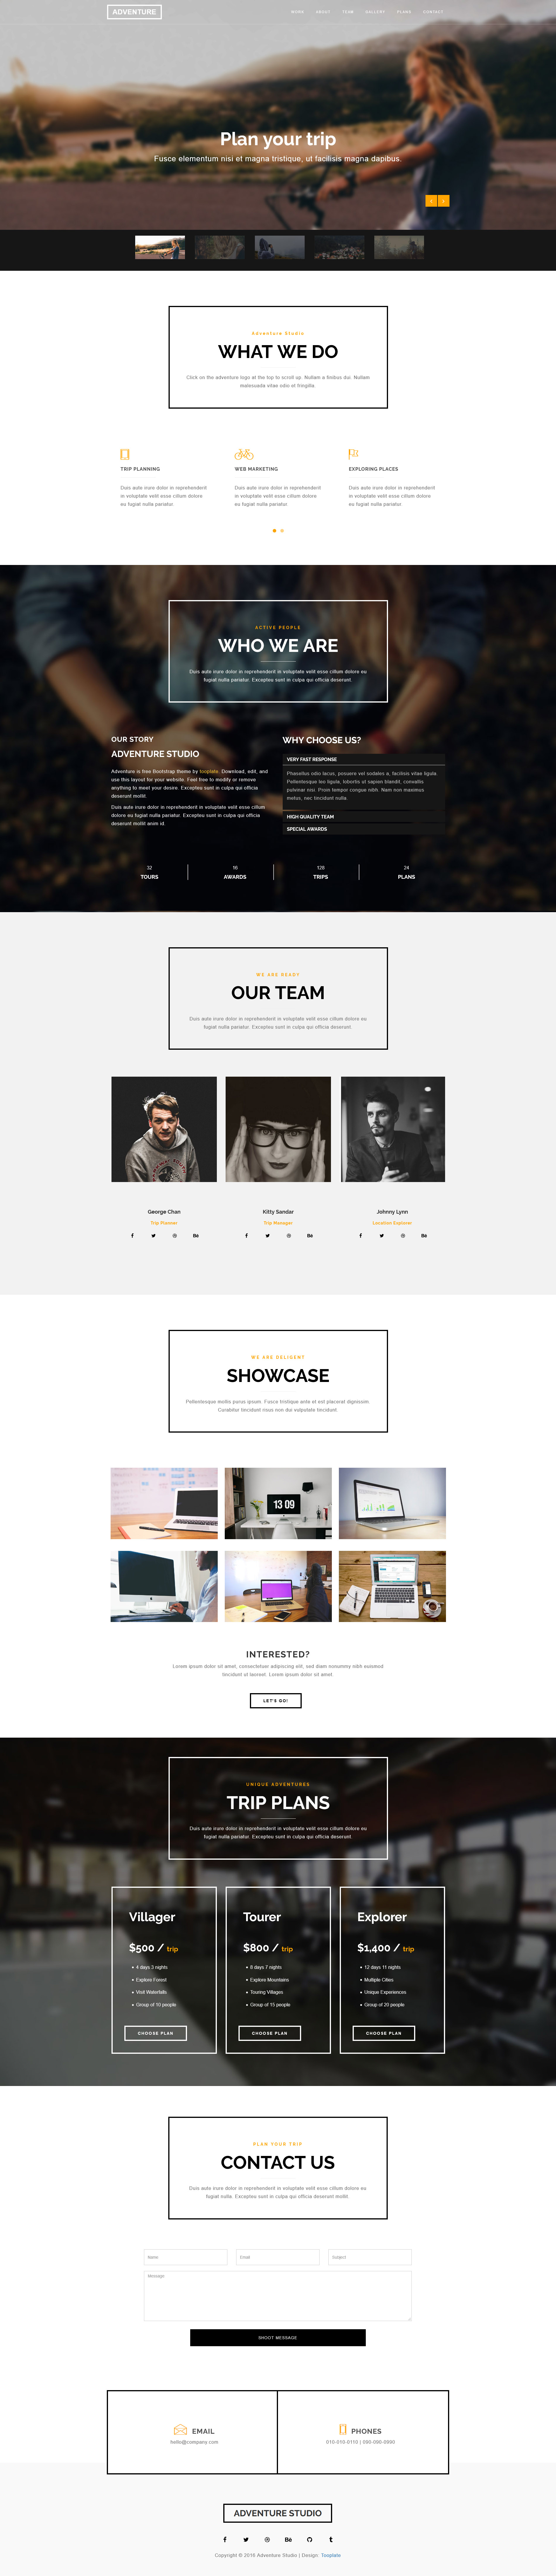 Adventure Bootstrap Theme - Free HTML CSS Templates